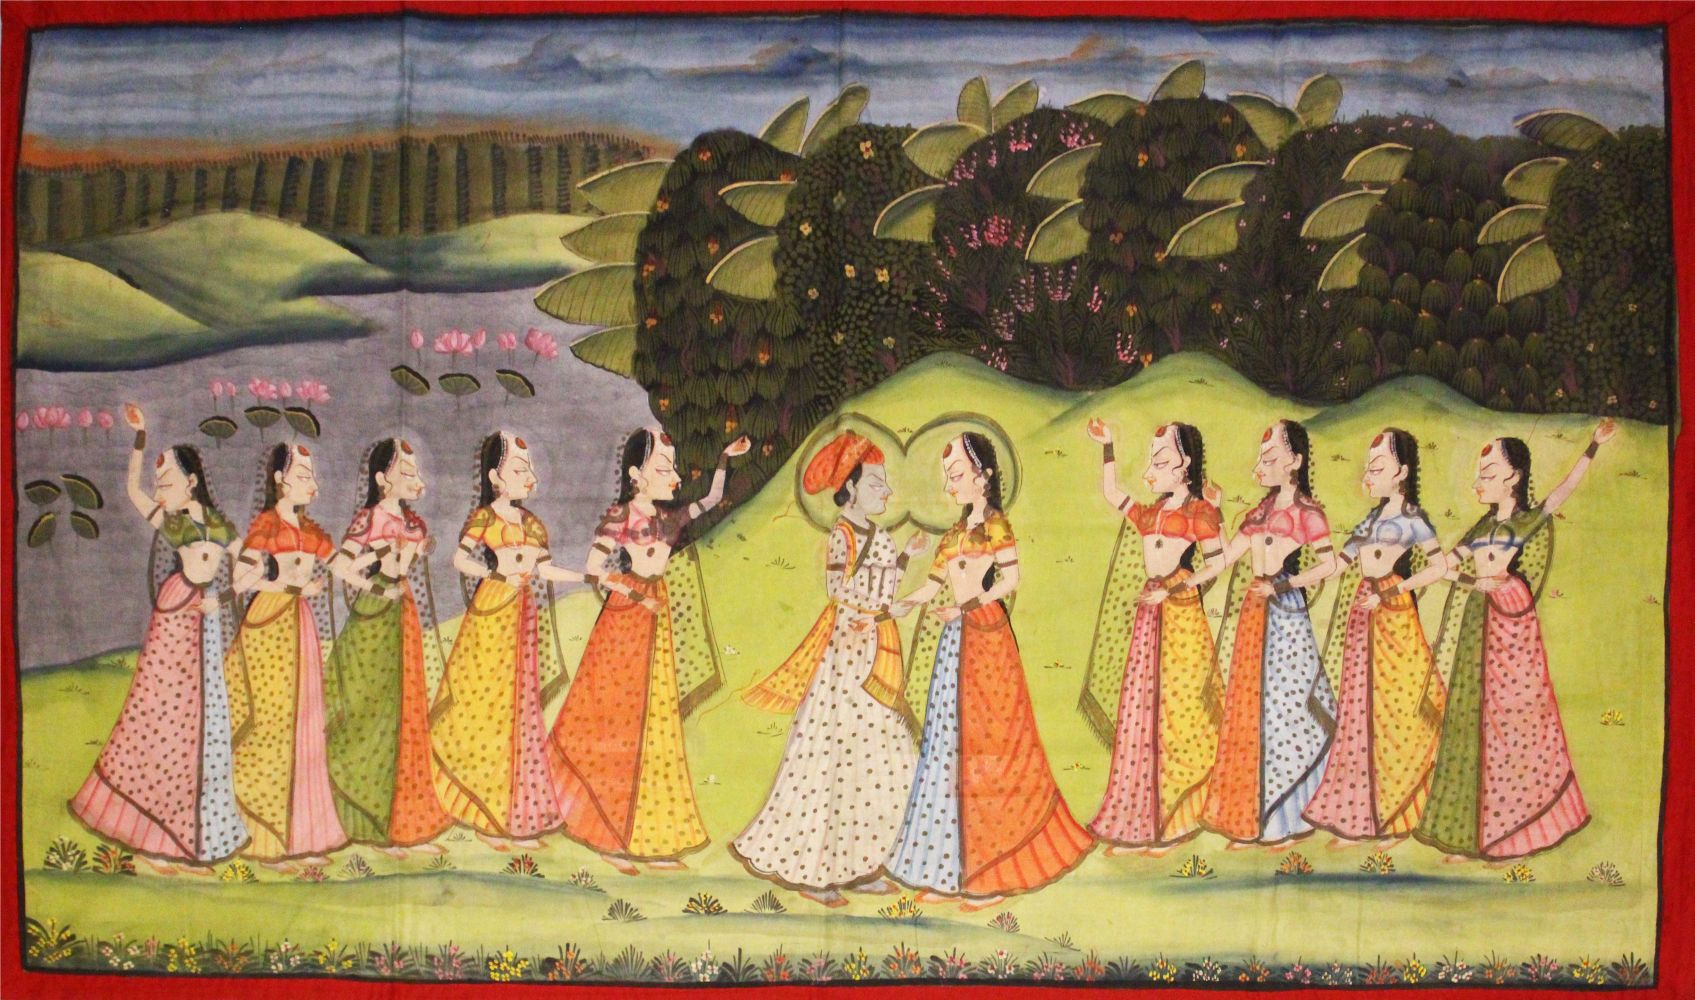 Lot 56 - A VERY GOOD LARGE 19TH CENTURY INDIAN COTTON / TEXTILE PICHWAI PAINTING, the textile depicting